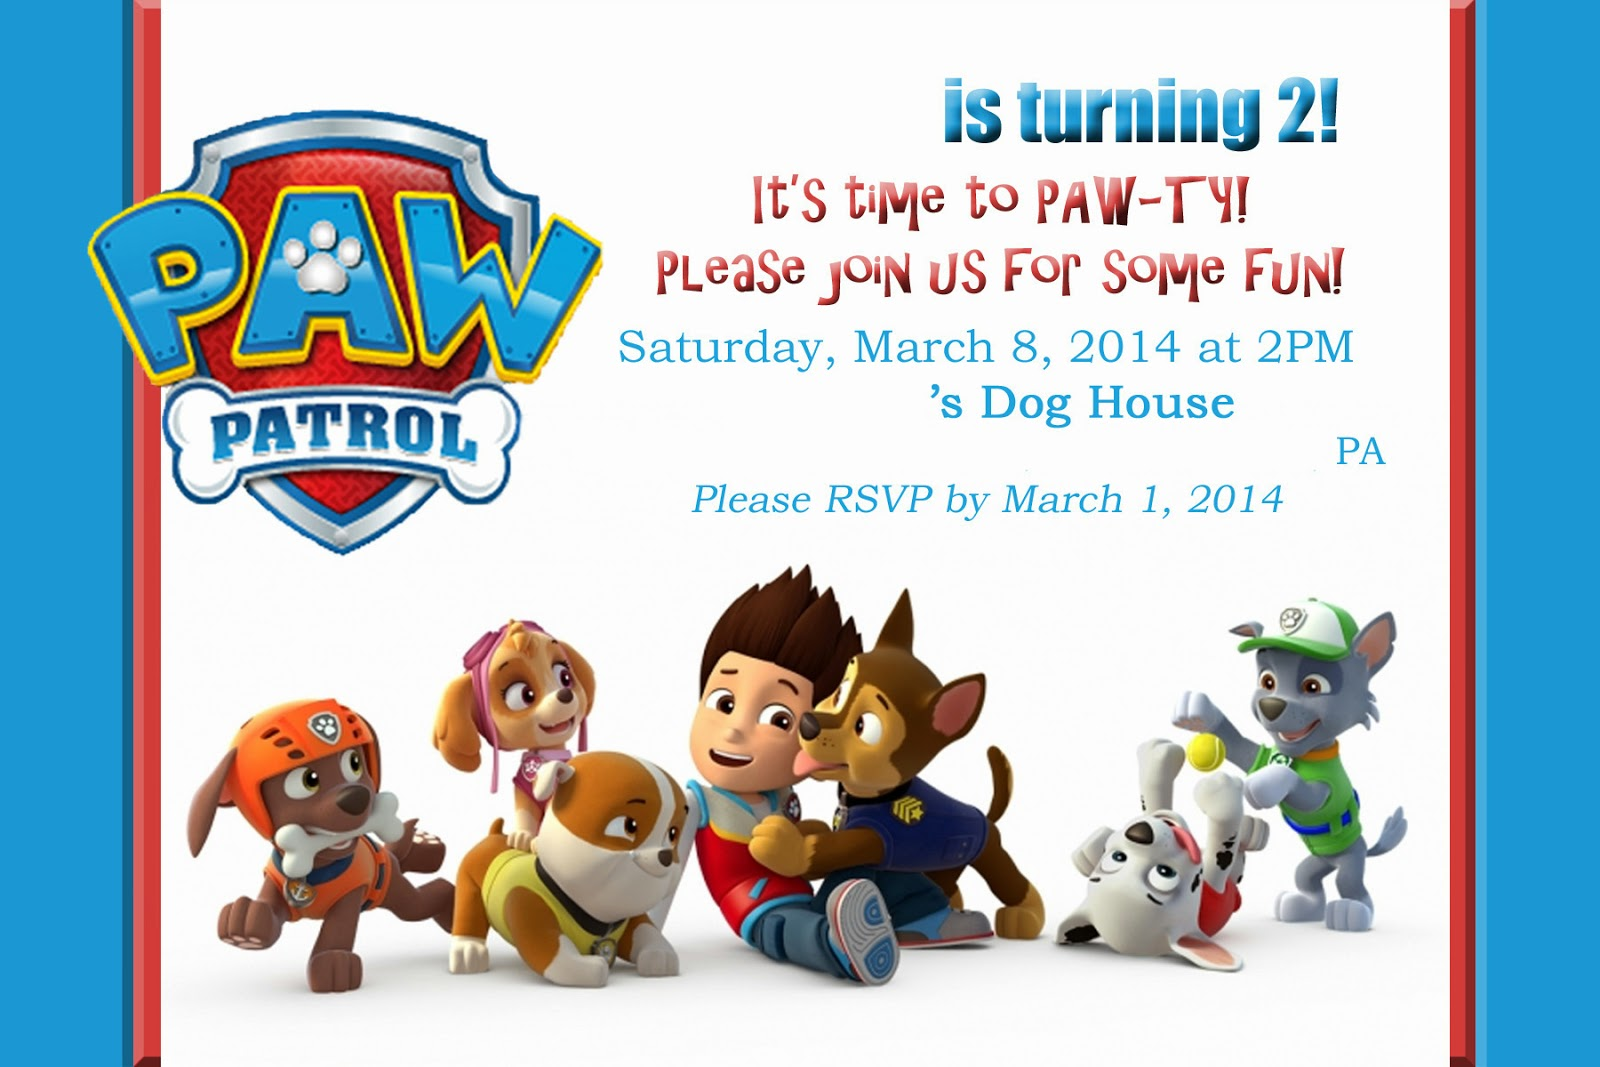 graphic regarding Paw Patrol Printable Decorations named Mothers Tot Faculty: PAW Patrol / Doggy Occasion!